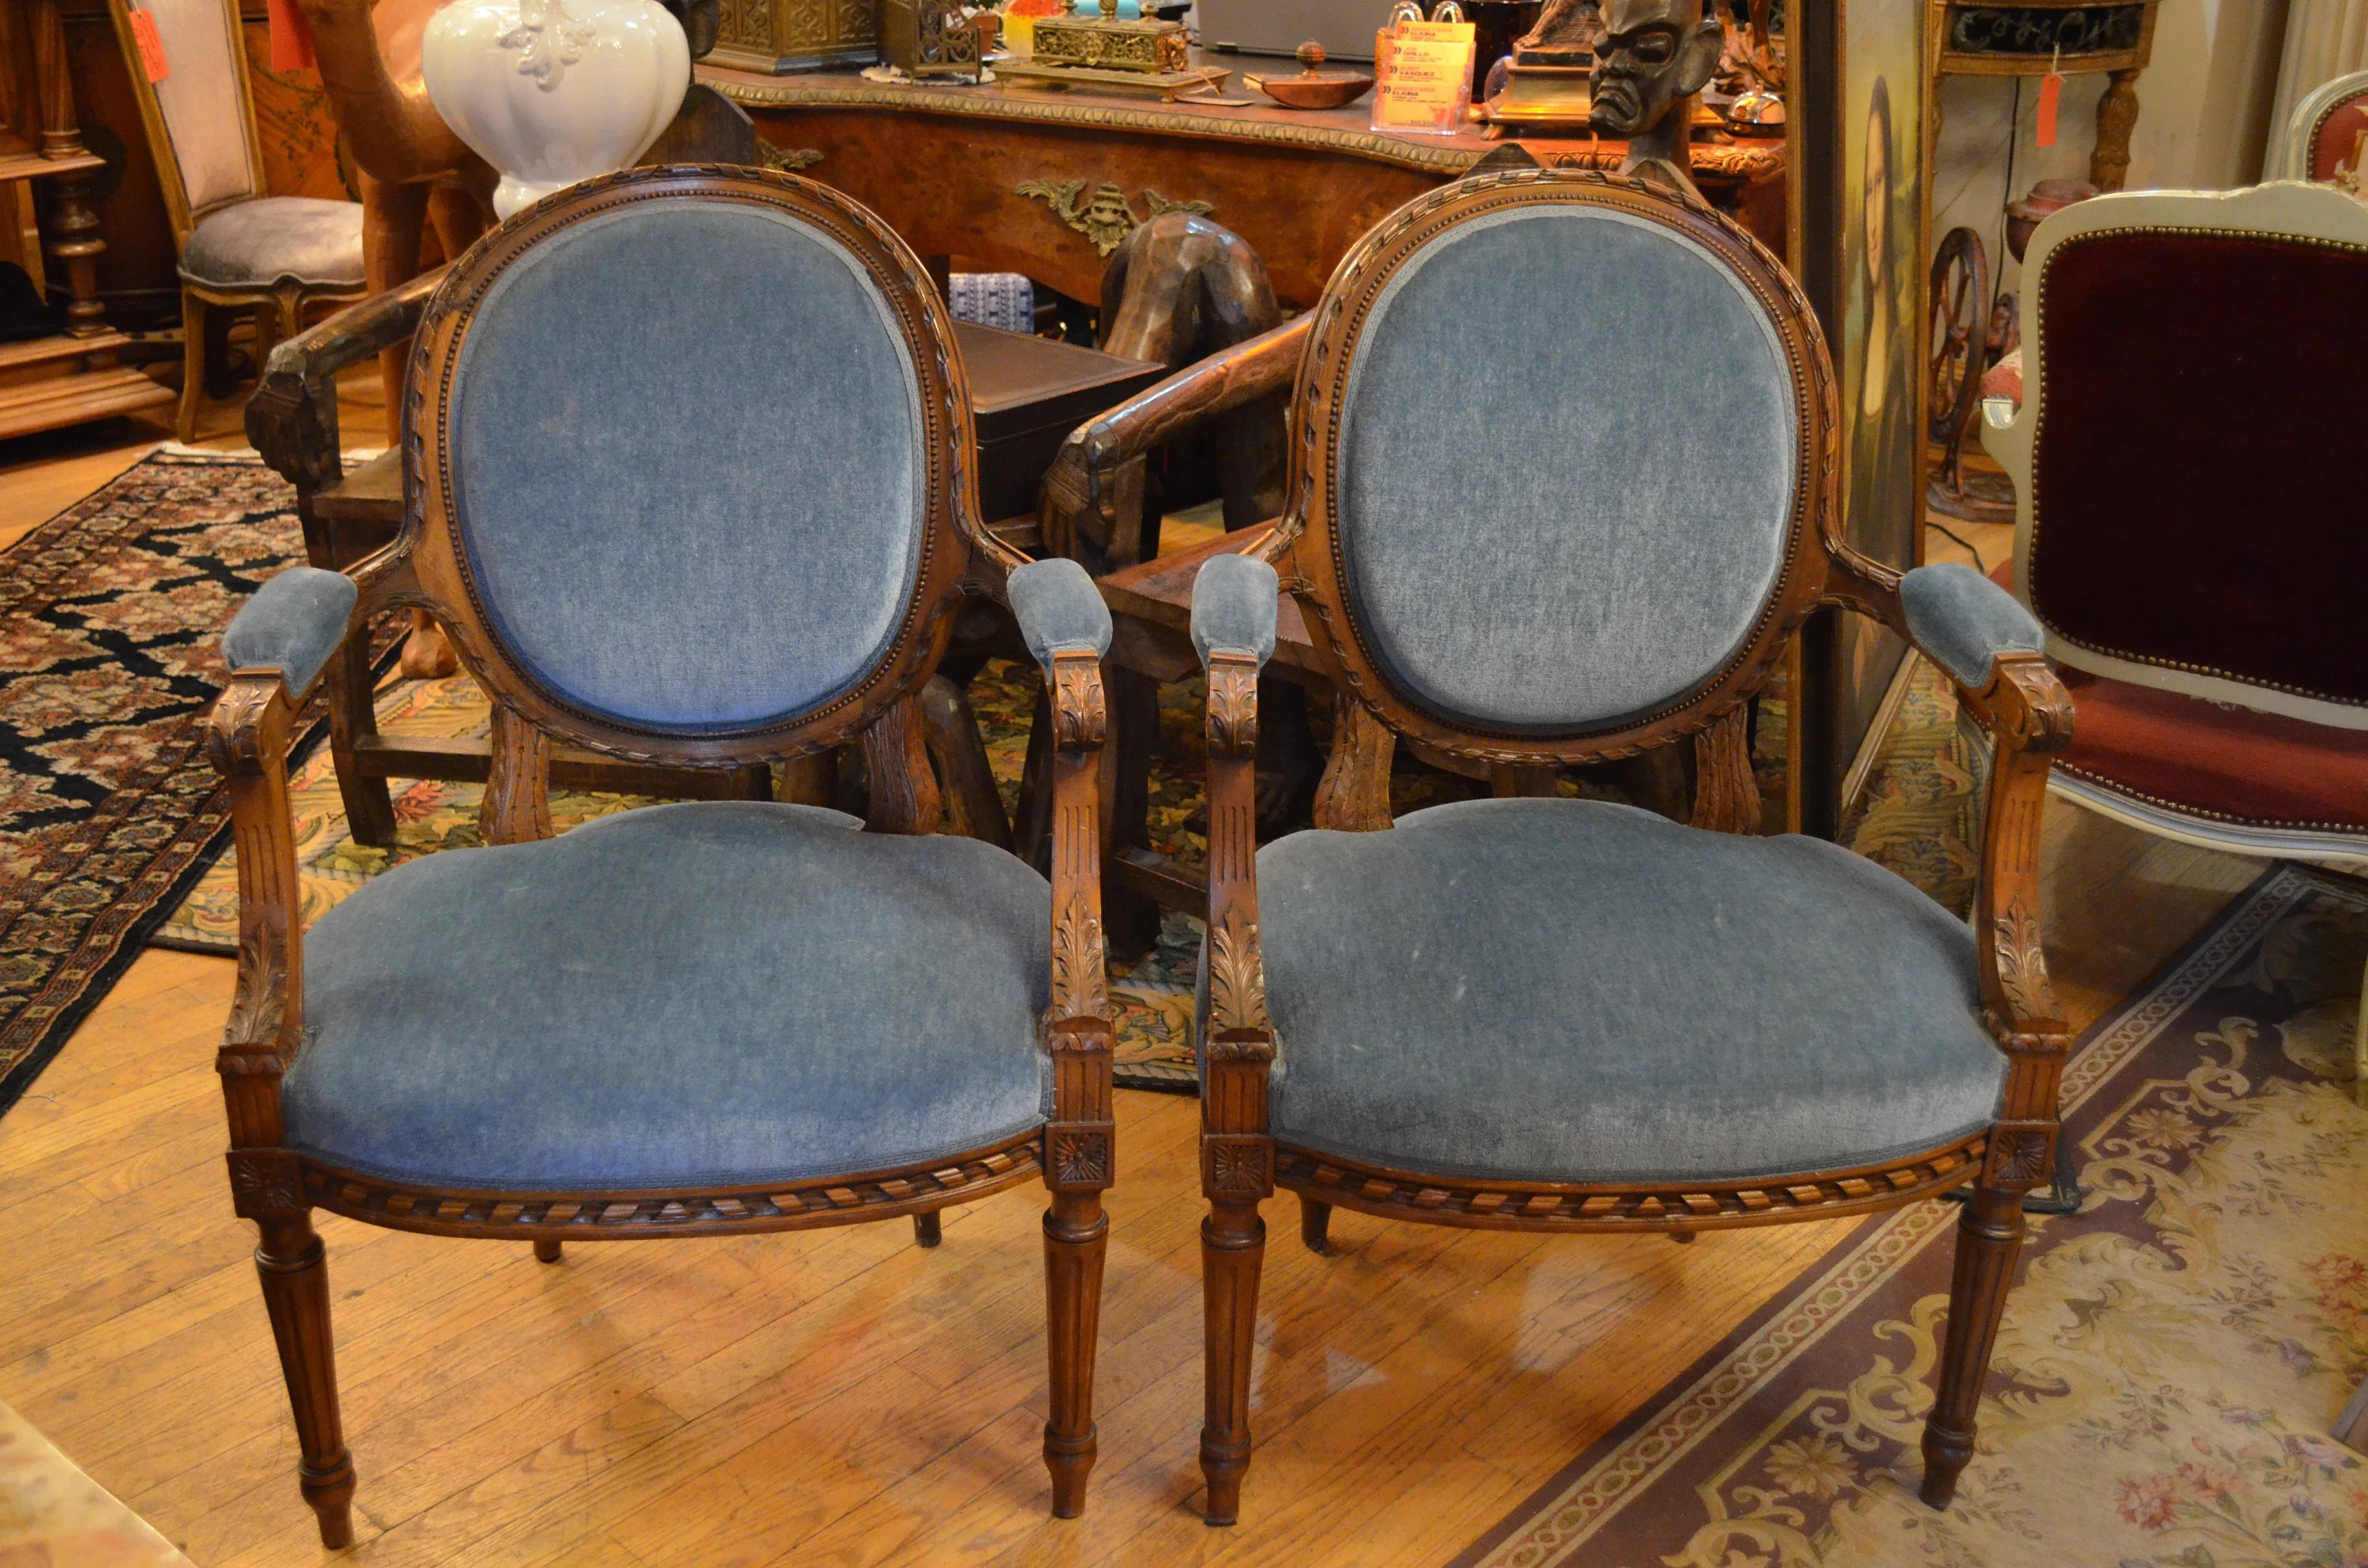 Antique Parlor Chairs Antique Pair Of Victorian Style Hand Carved Parlor Chairs Newly Upholstered In Blue Mohair